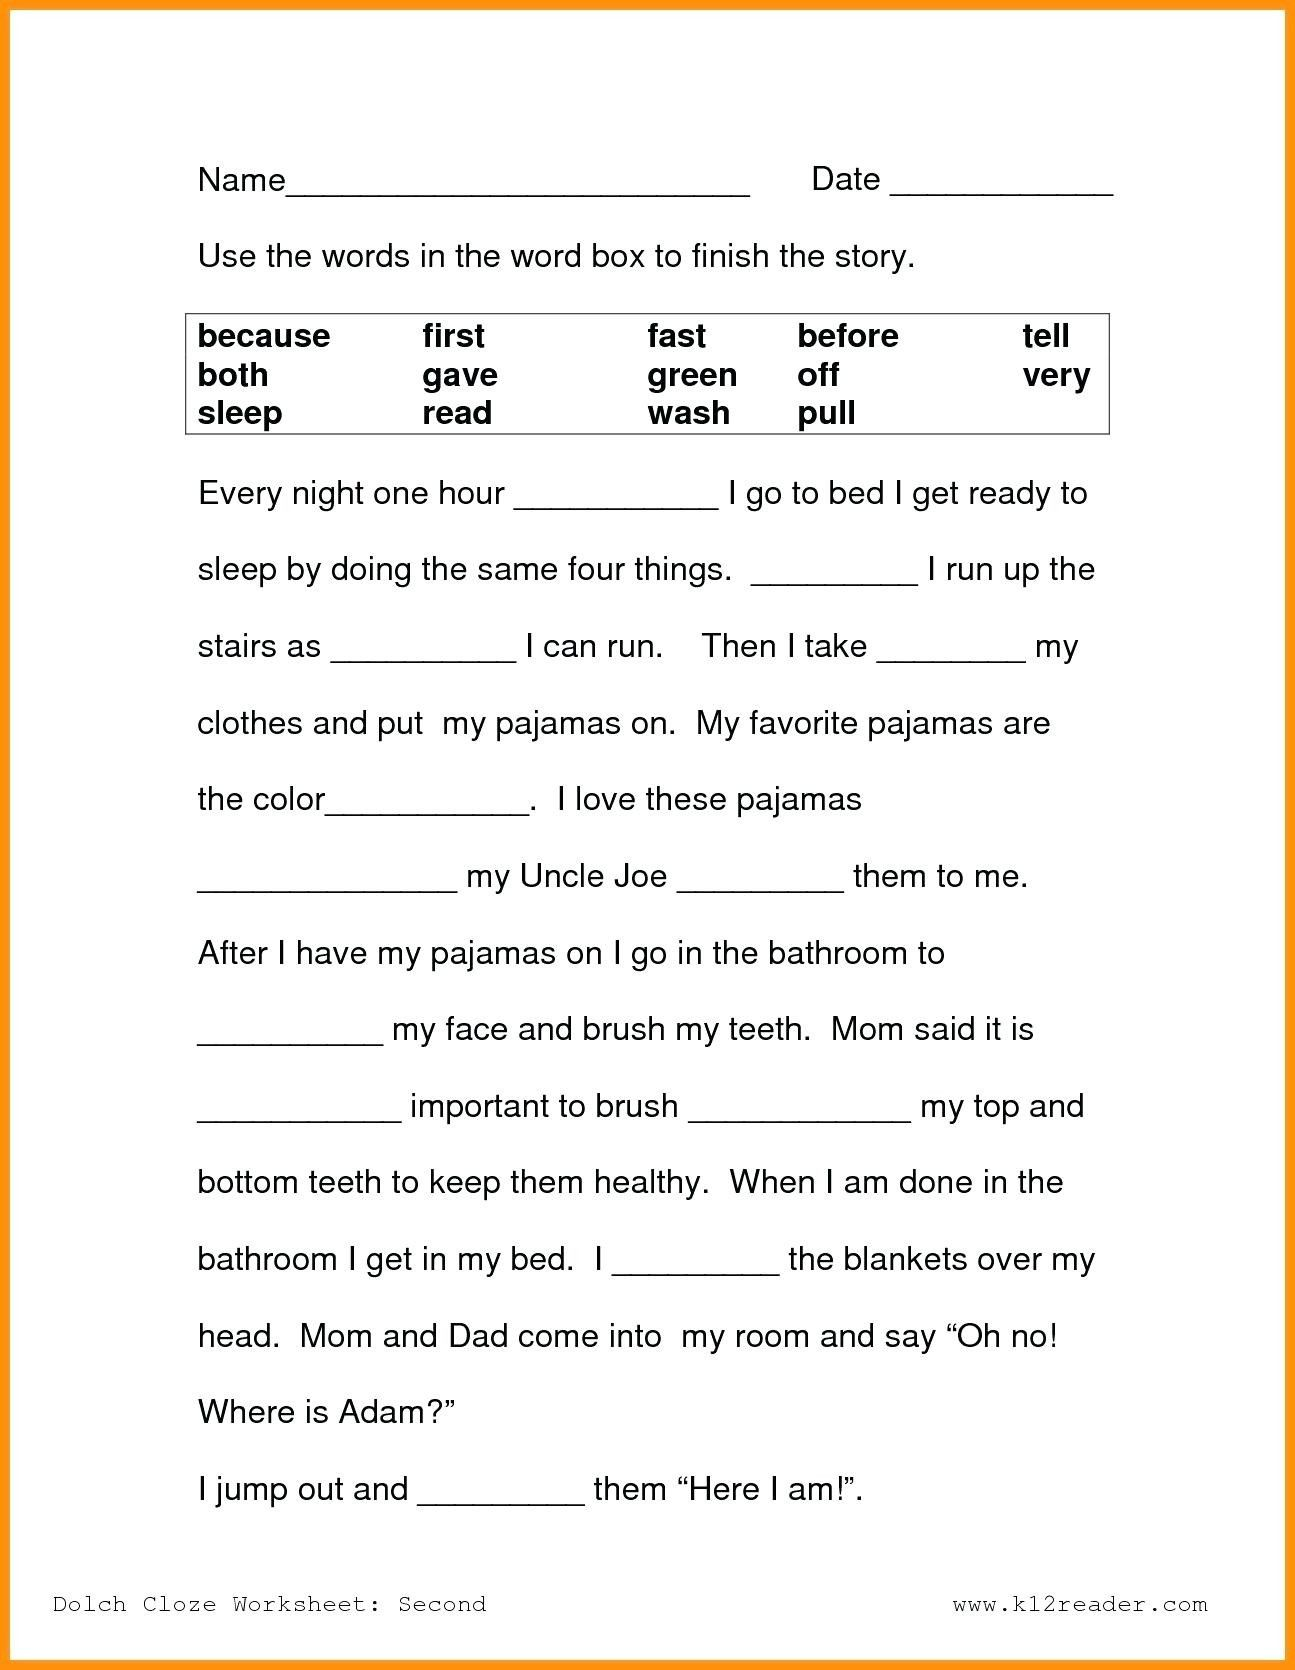 small resolution of Winston Grammar 6th Grade Worksheet Printable   Printable Worksheets and  Activities for Teachers